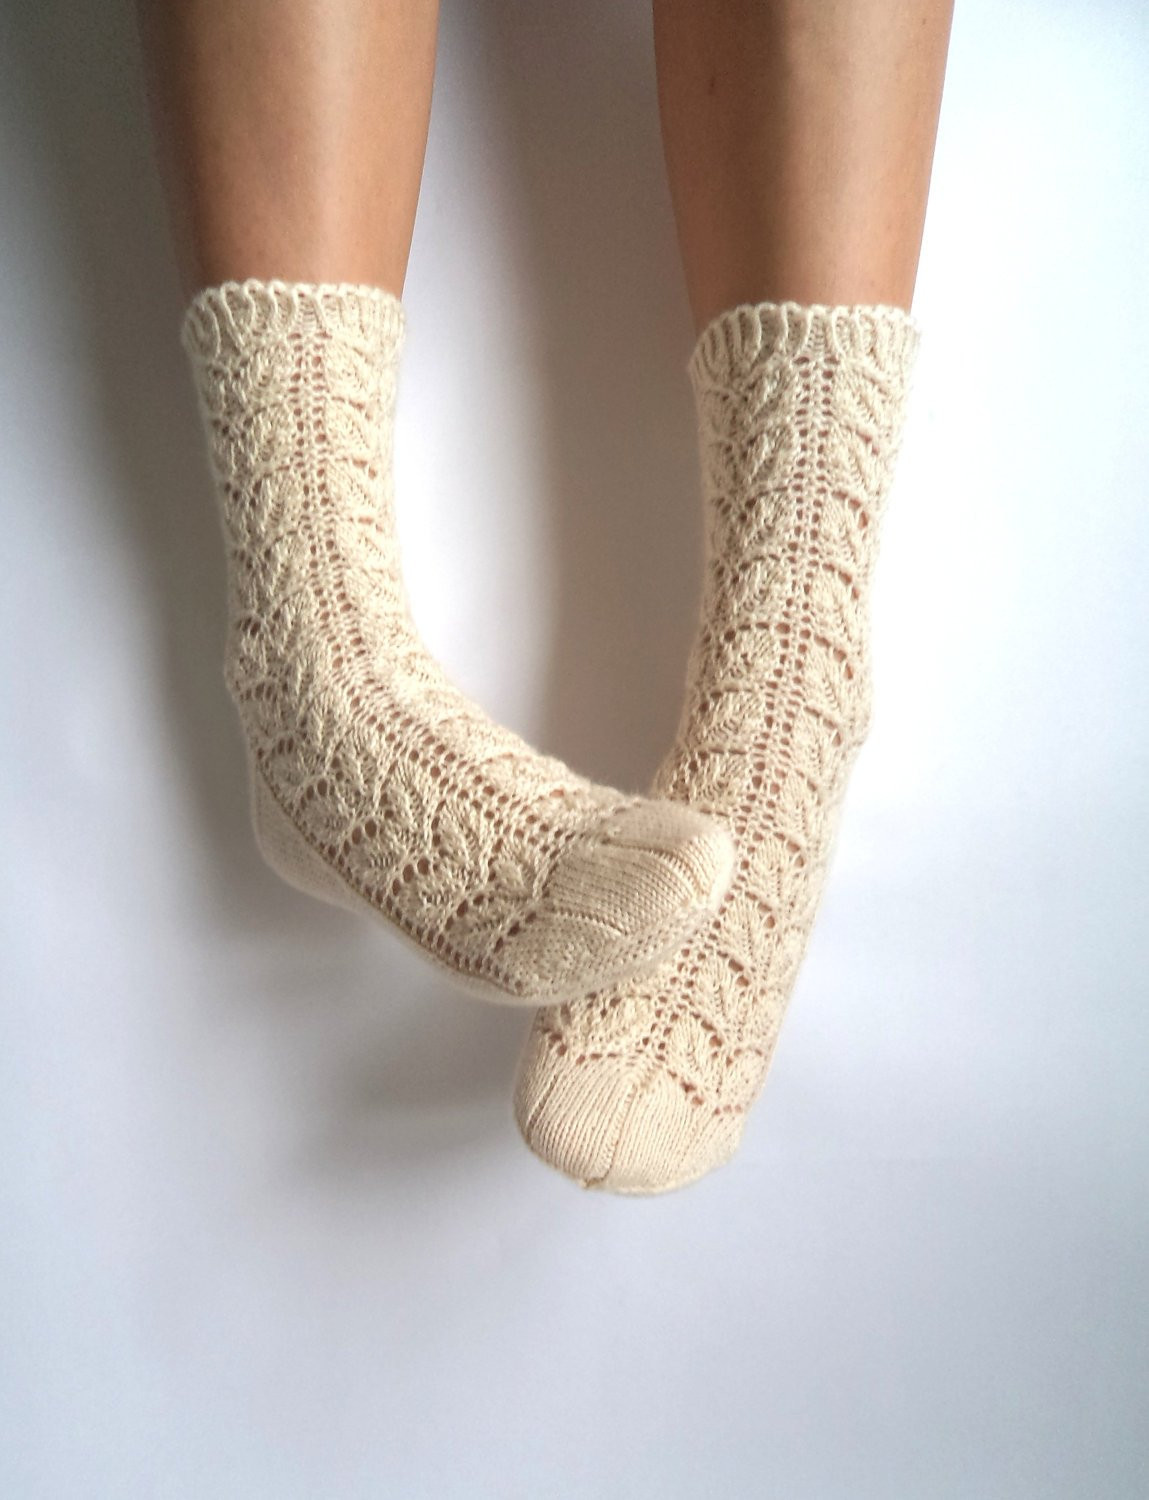 Knitting socks Unique F White Lace socks Hand Knit Wool socks Wool socks Lace Of Gorgeous 44 Pictures Knitting socks